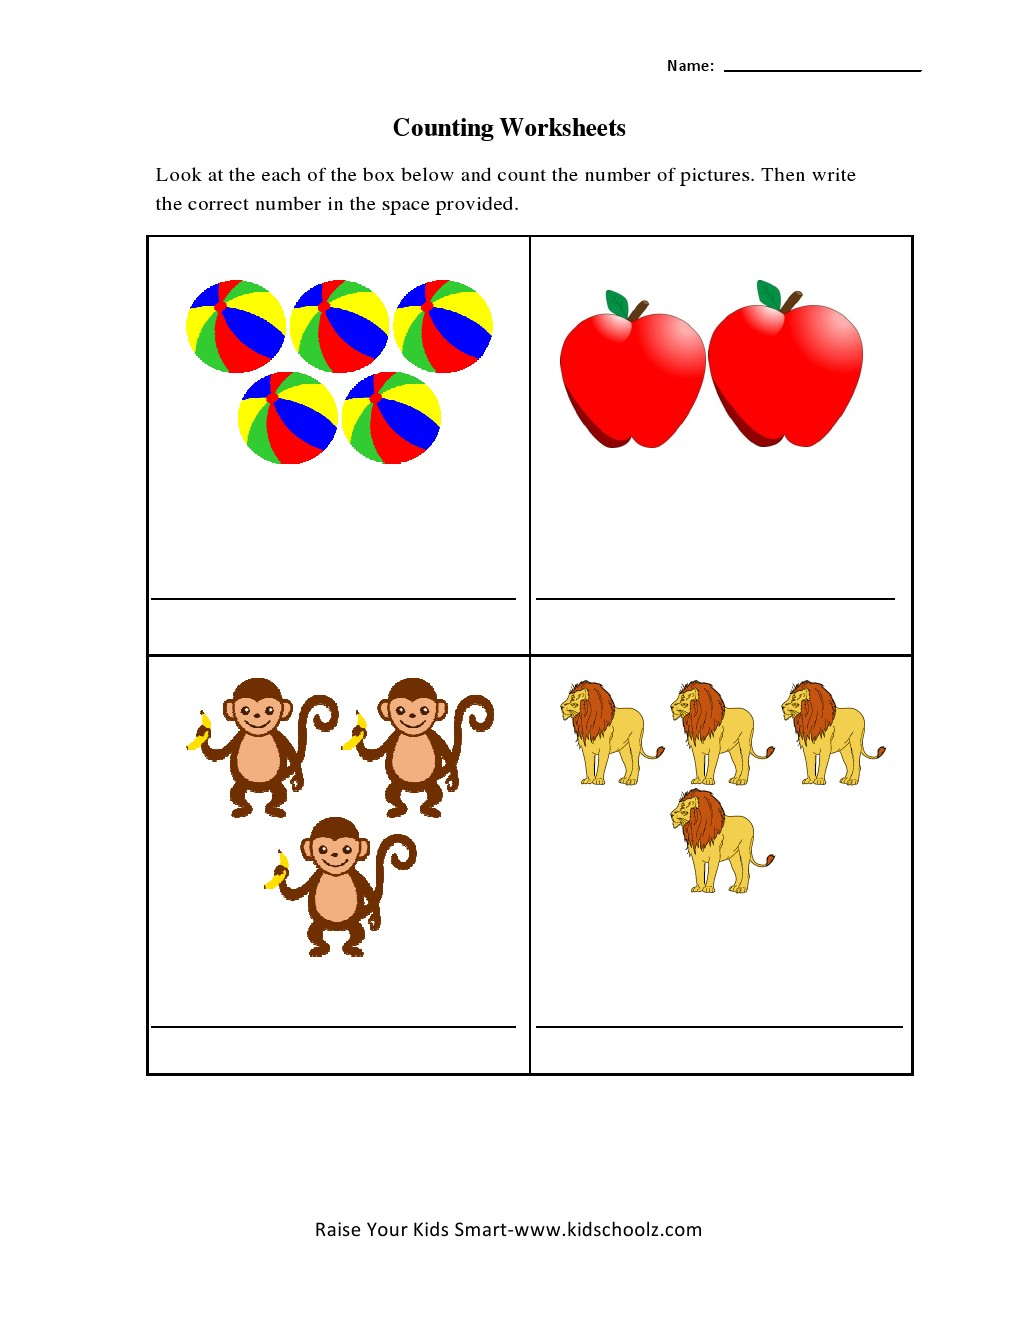 ... Worksheet besides Phonics Worksheets besides Math Worksheets. on